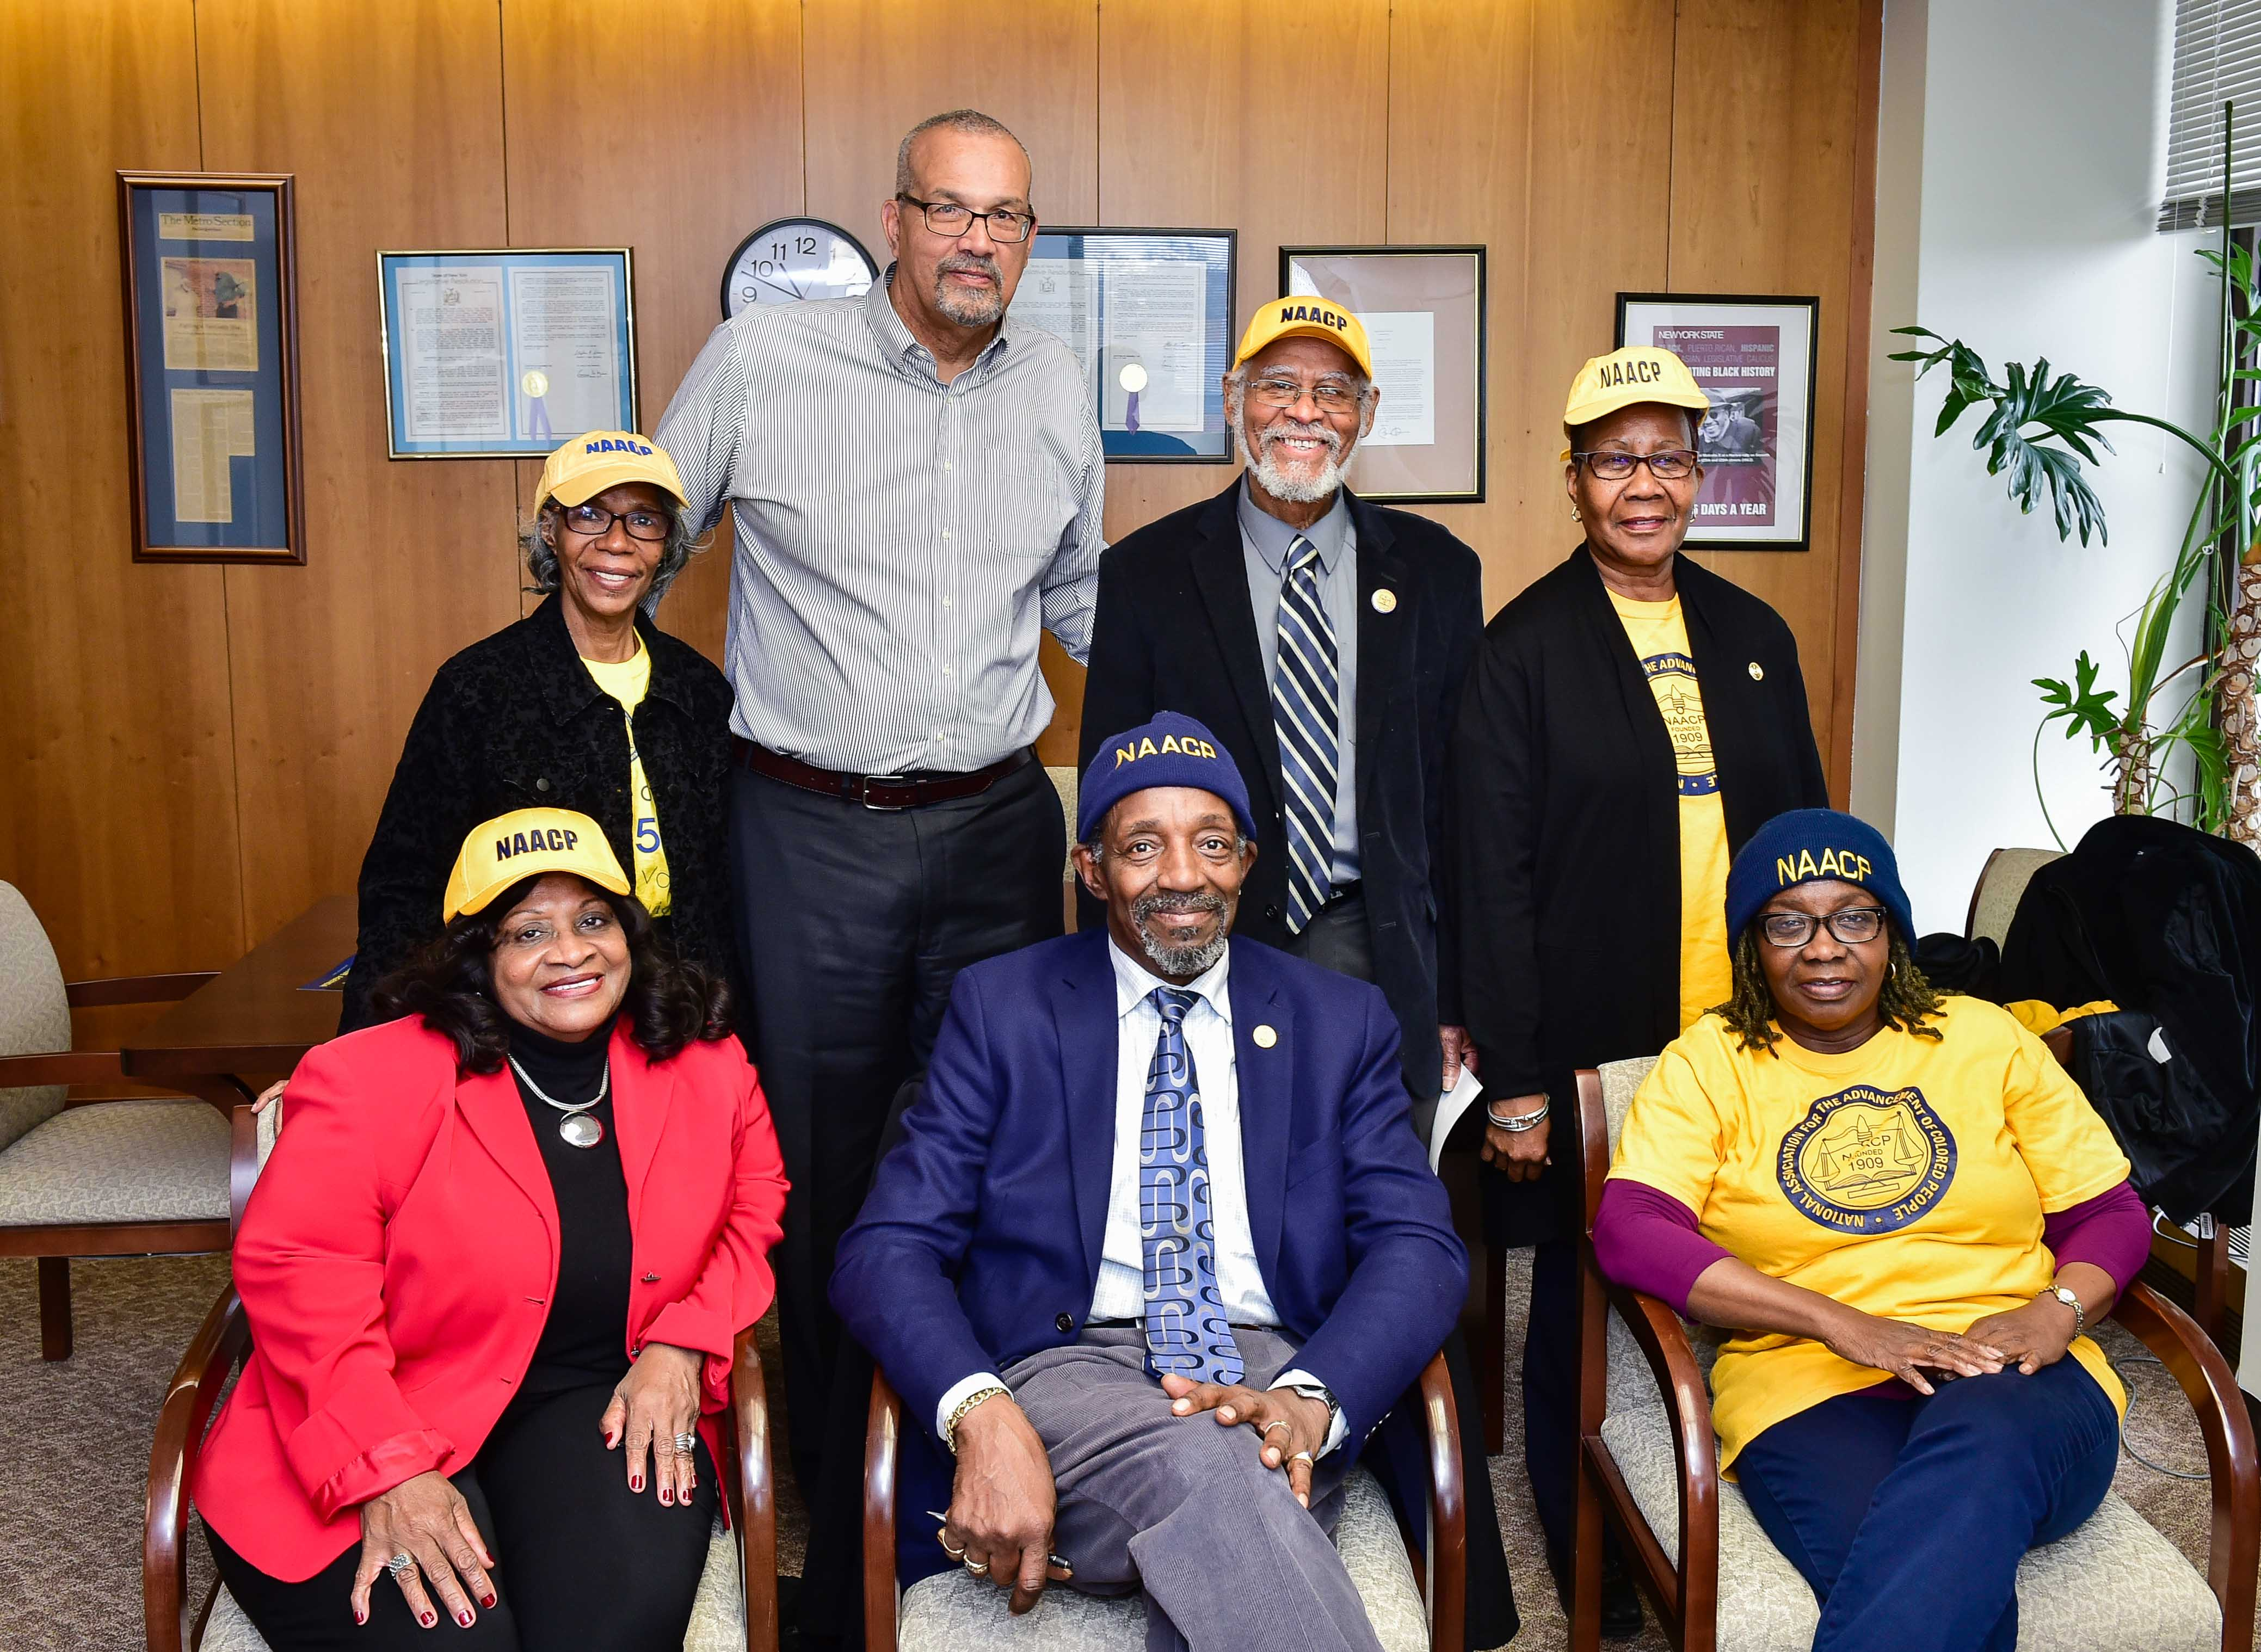 Meeting with the Corona East Elmhurst NAACP